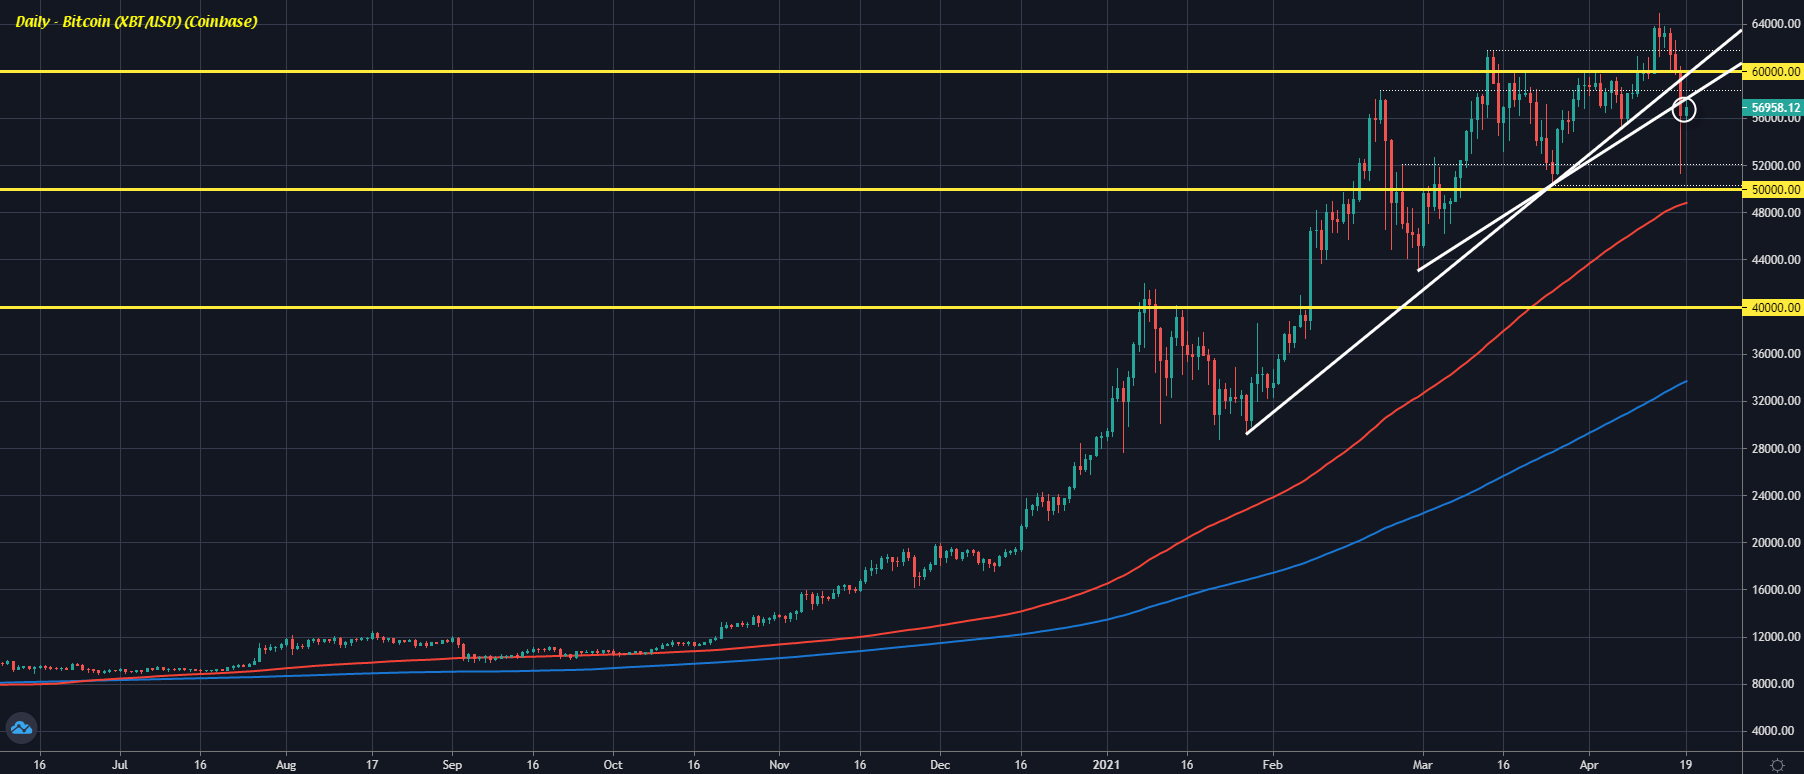 Bitcoin plunge: What are the charts saying now?